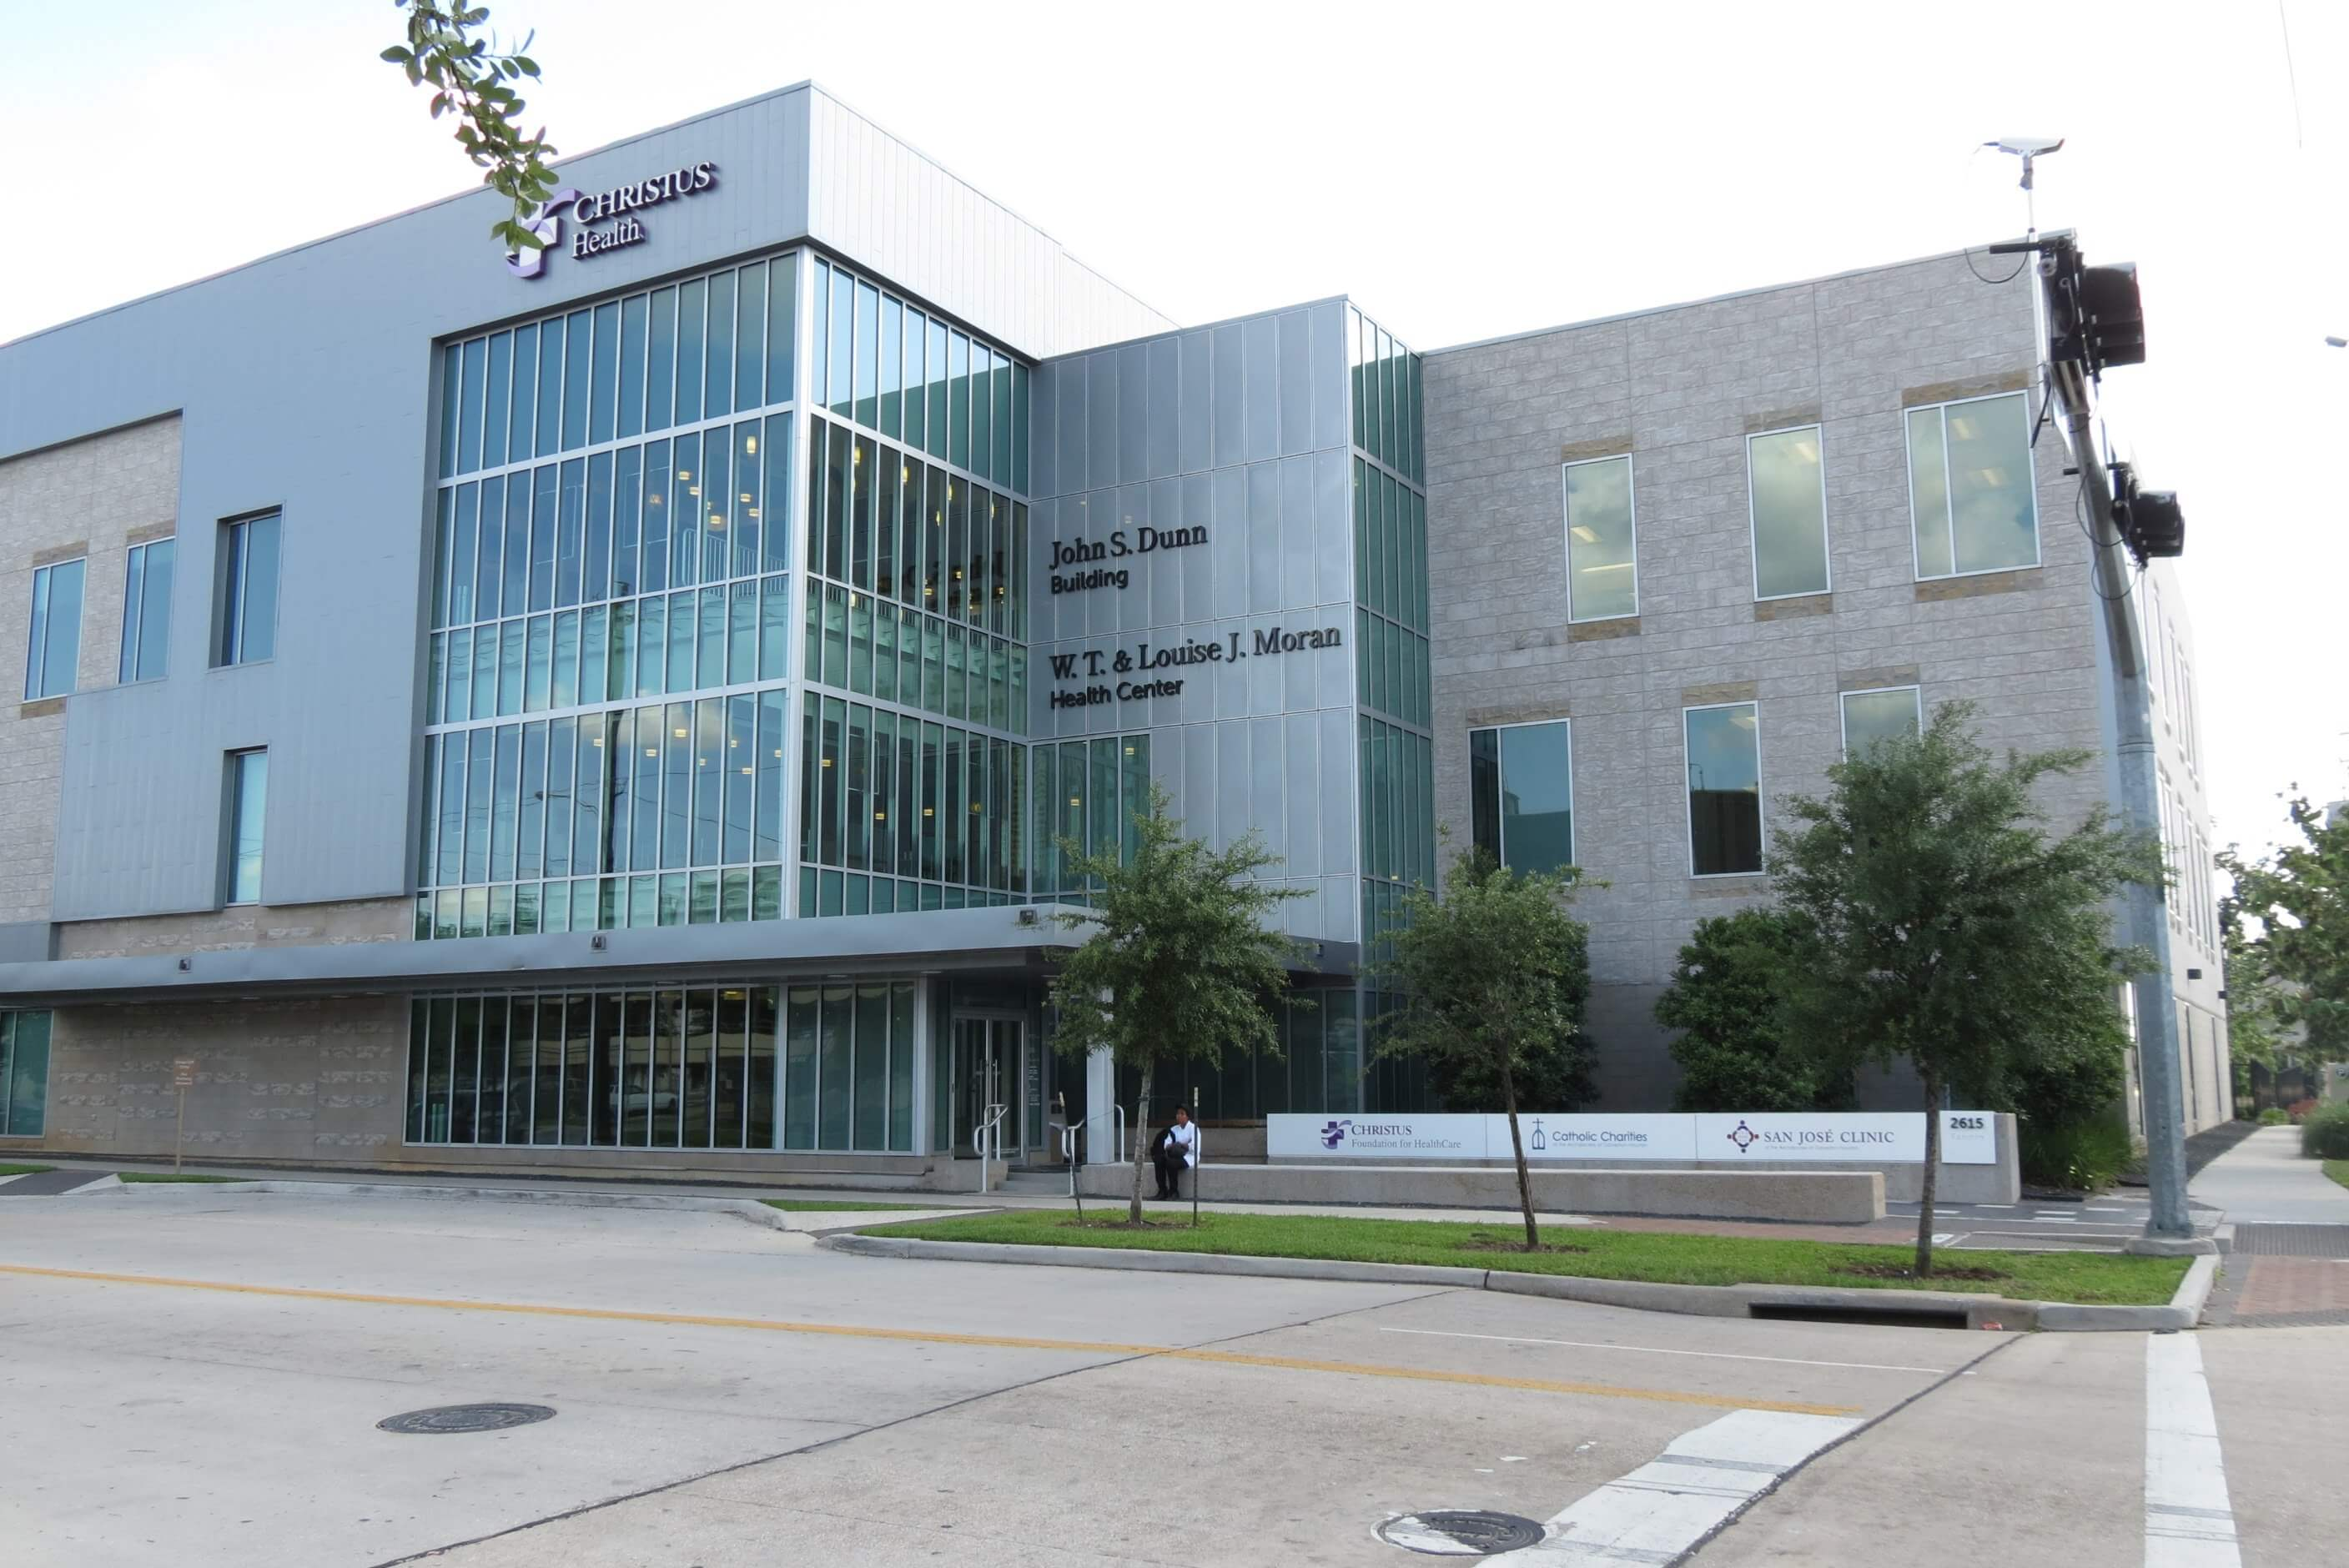 The San José Clinic, located at 2615 Fannin, is the newest member of the Texas Medical Center.